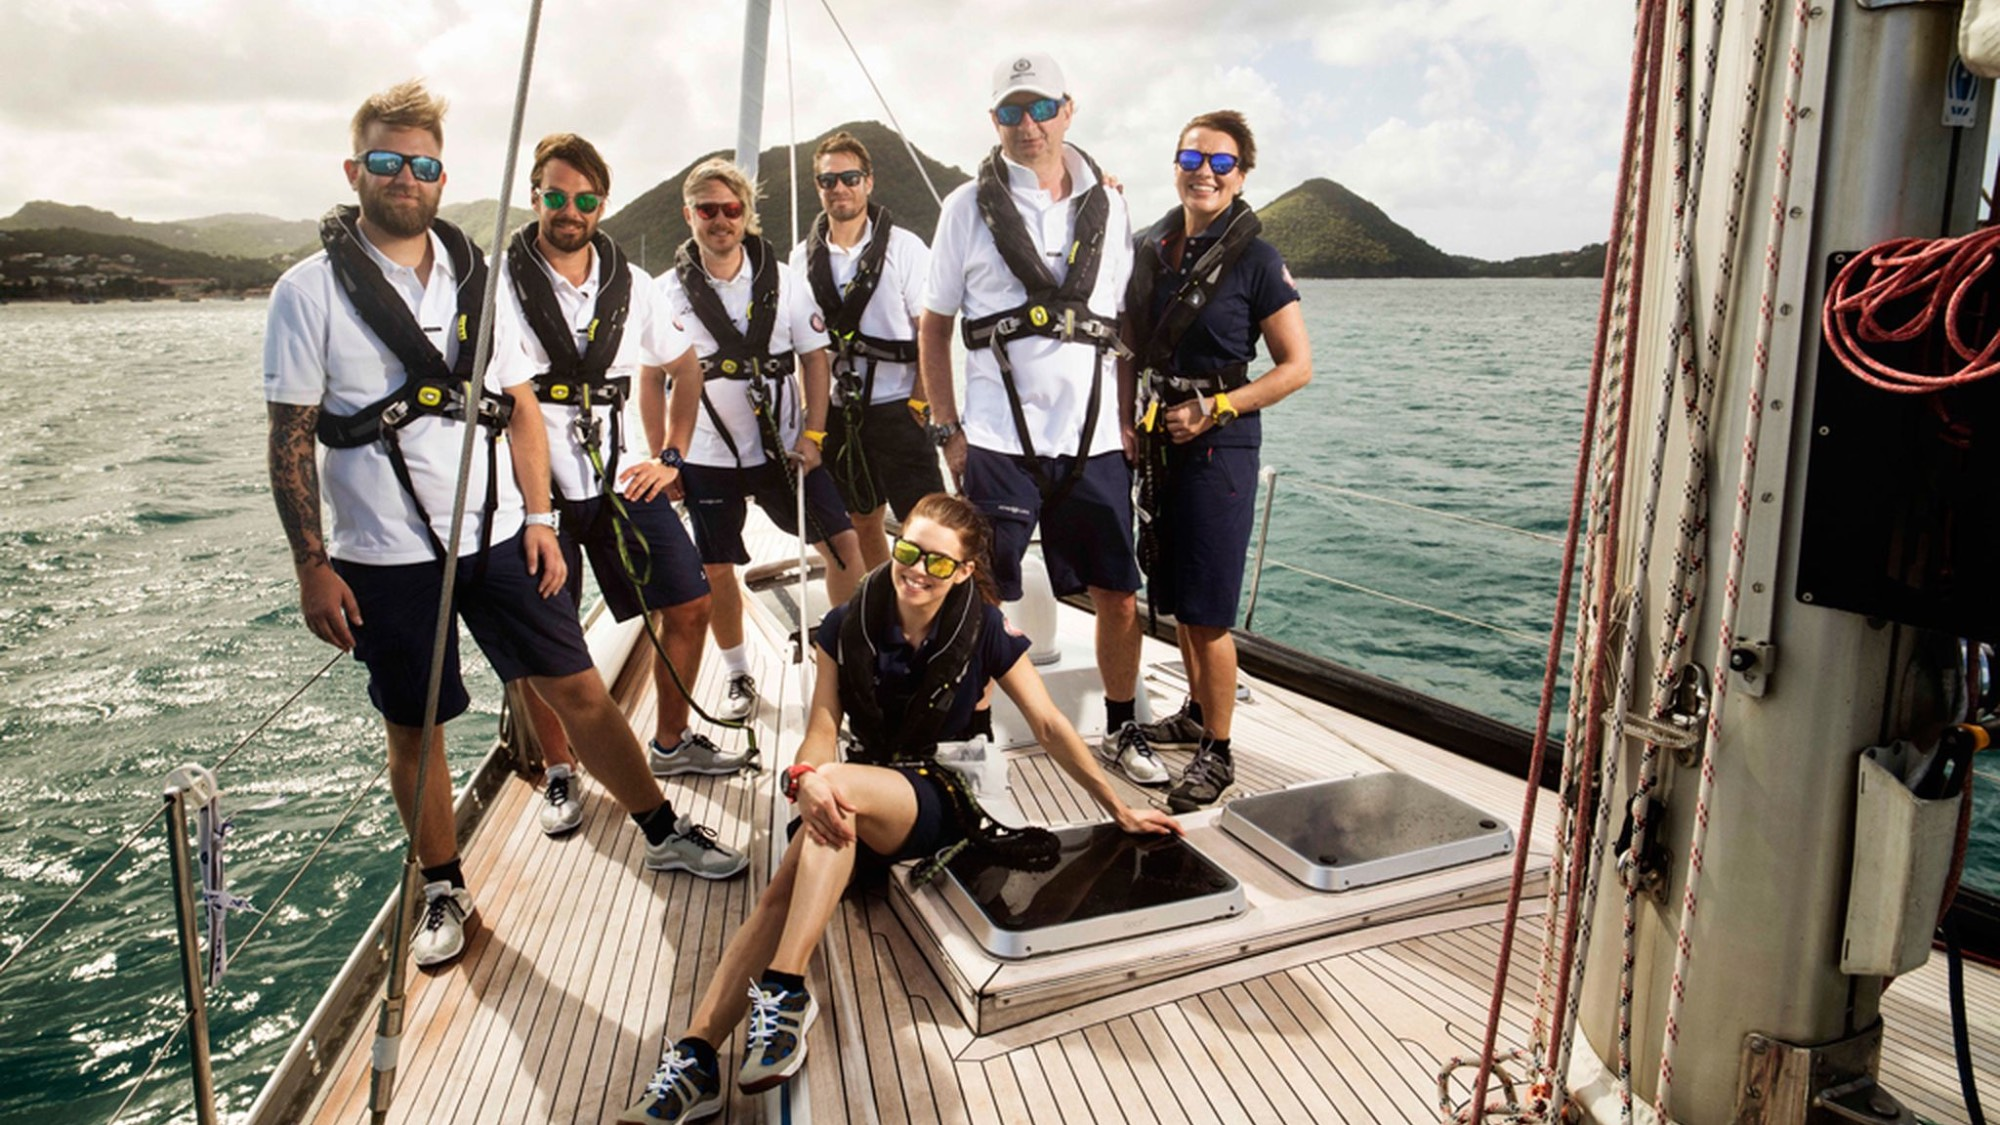 A group of people standing on a sailing boat